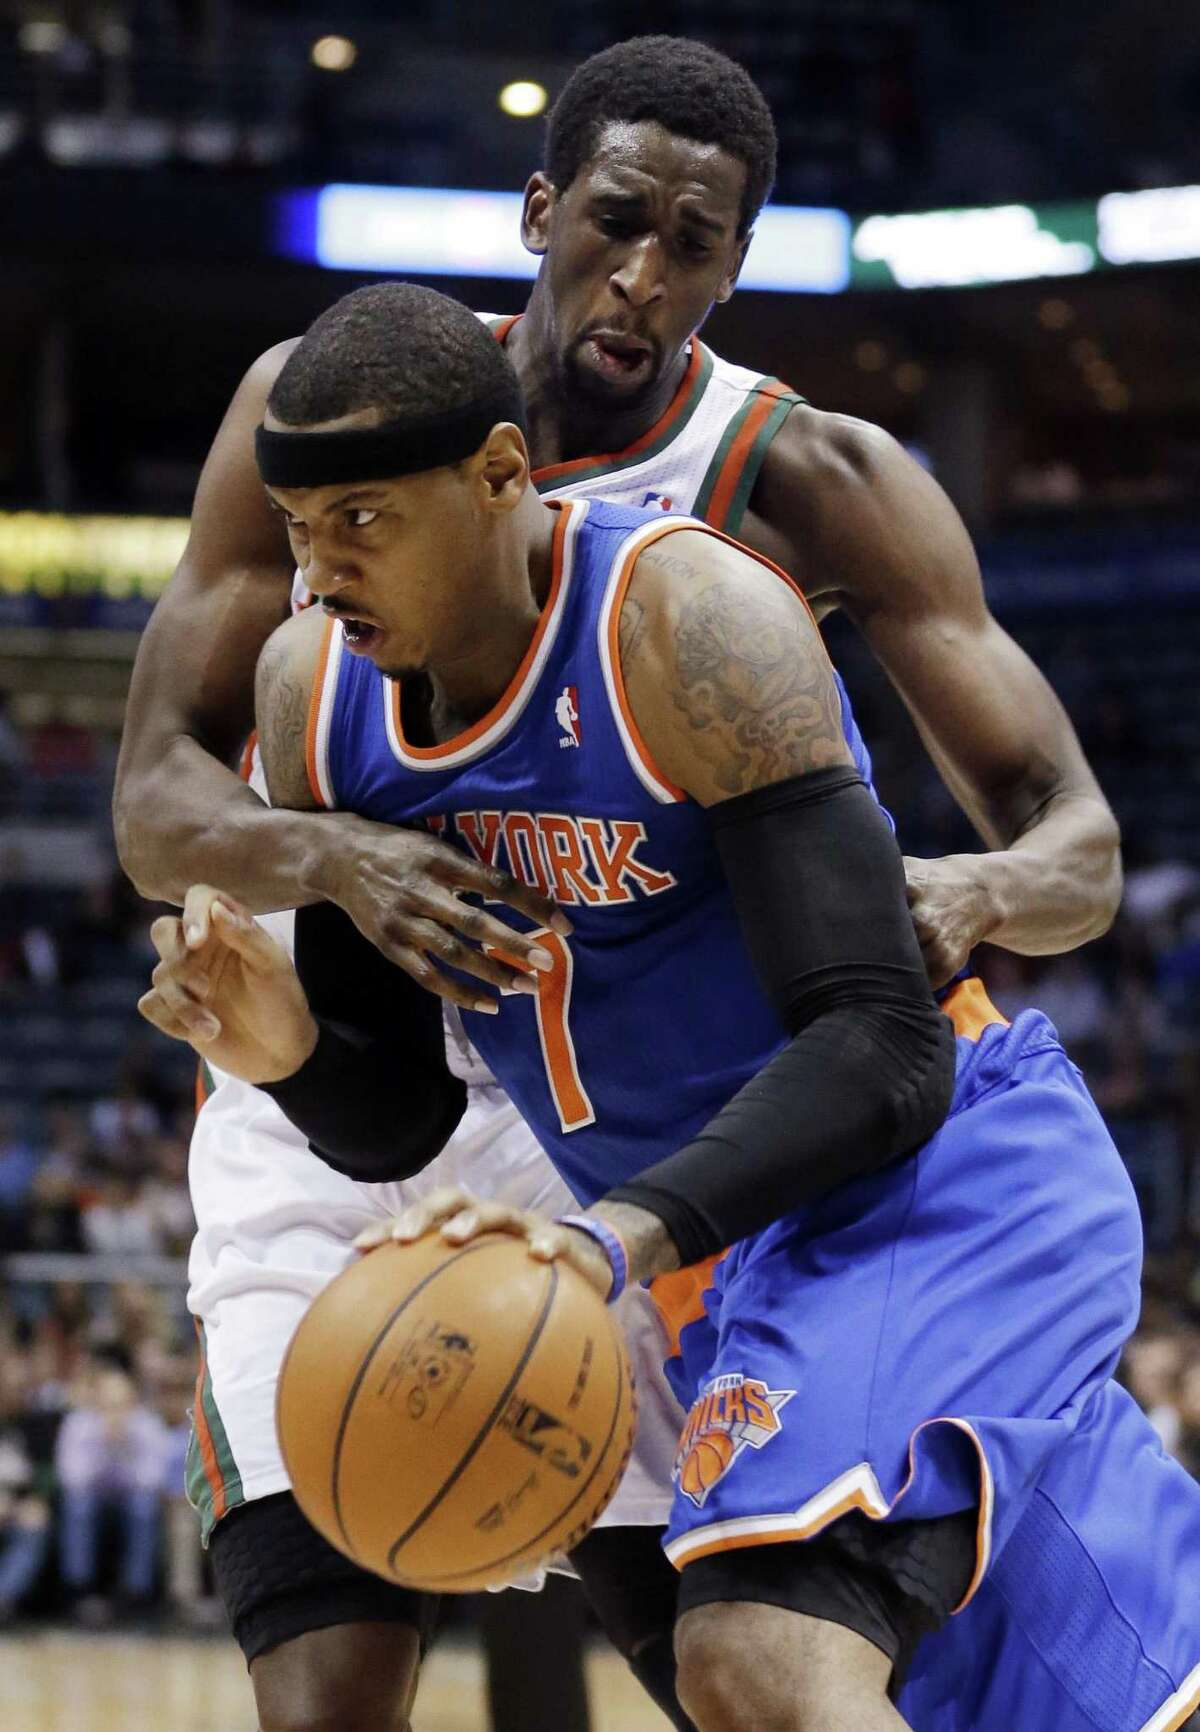 New York Knicks' Carmelo Anthony is fouled by Milwaukee Bucks' Ekpe Udoh as he drives during the first half of an NBA basketball game Wednesday, Nov. 28, 2012, in Milwaukee. (AP Photo/Morry Gash)